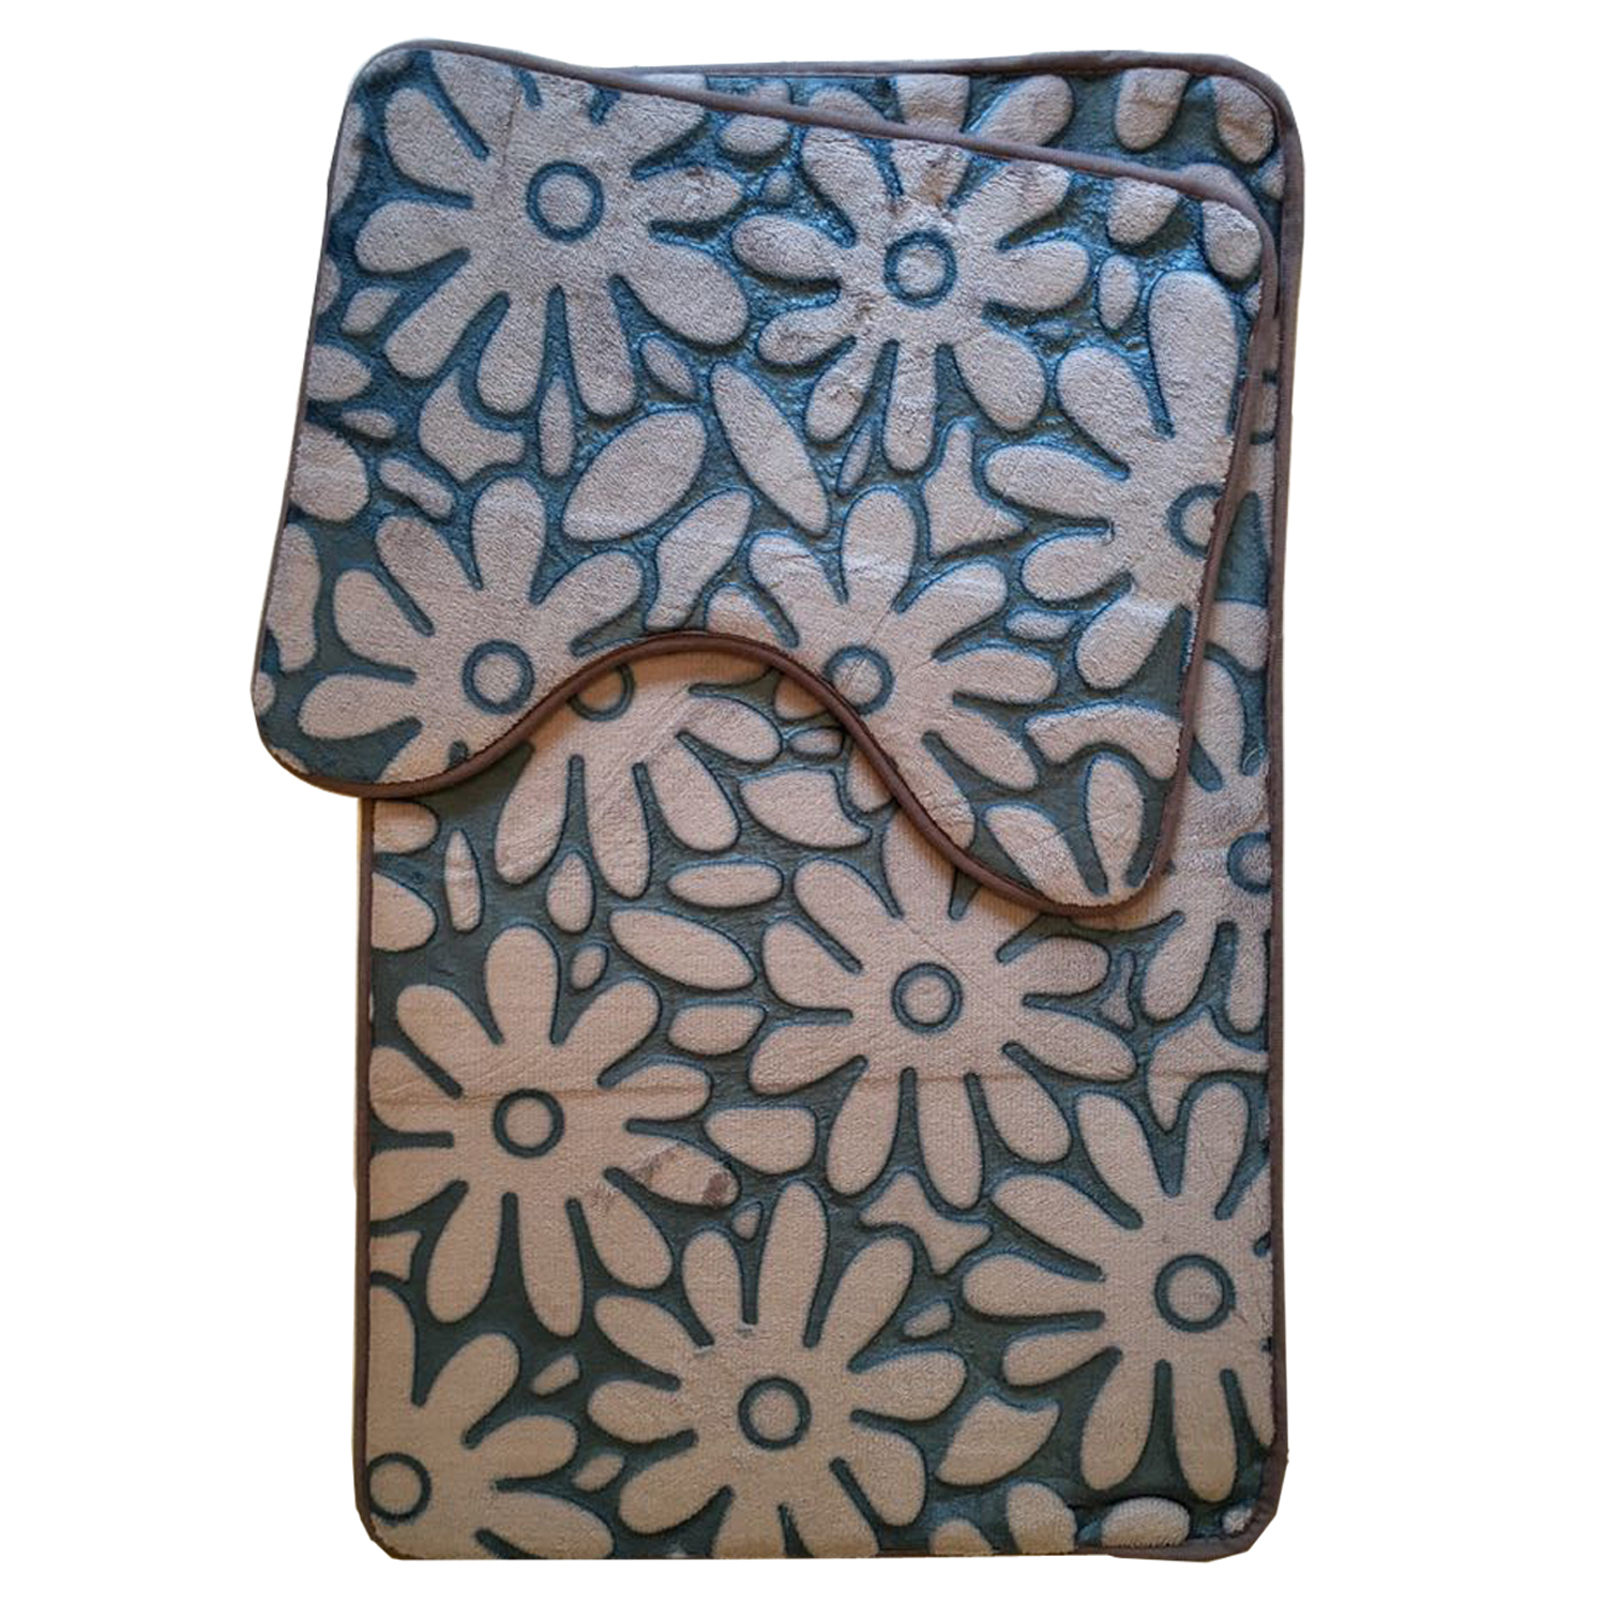 Shop Now Floral Bath Mat For Bathroom In The Uk De Lavish